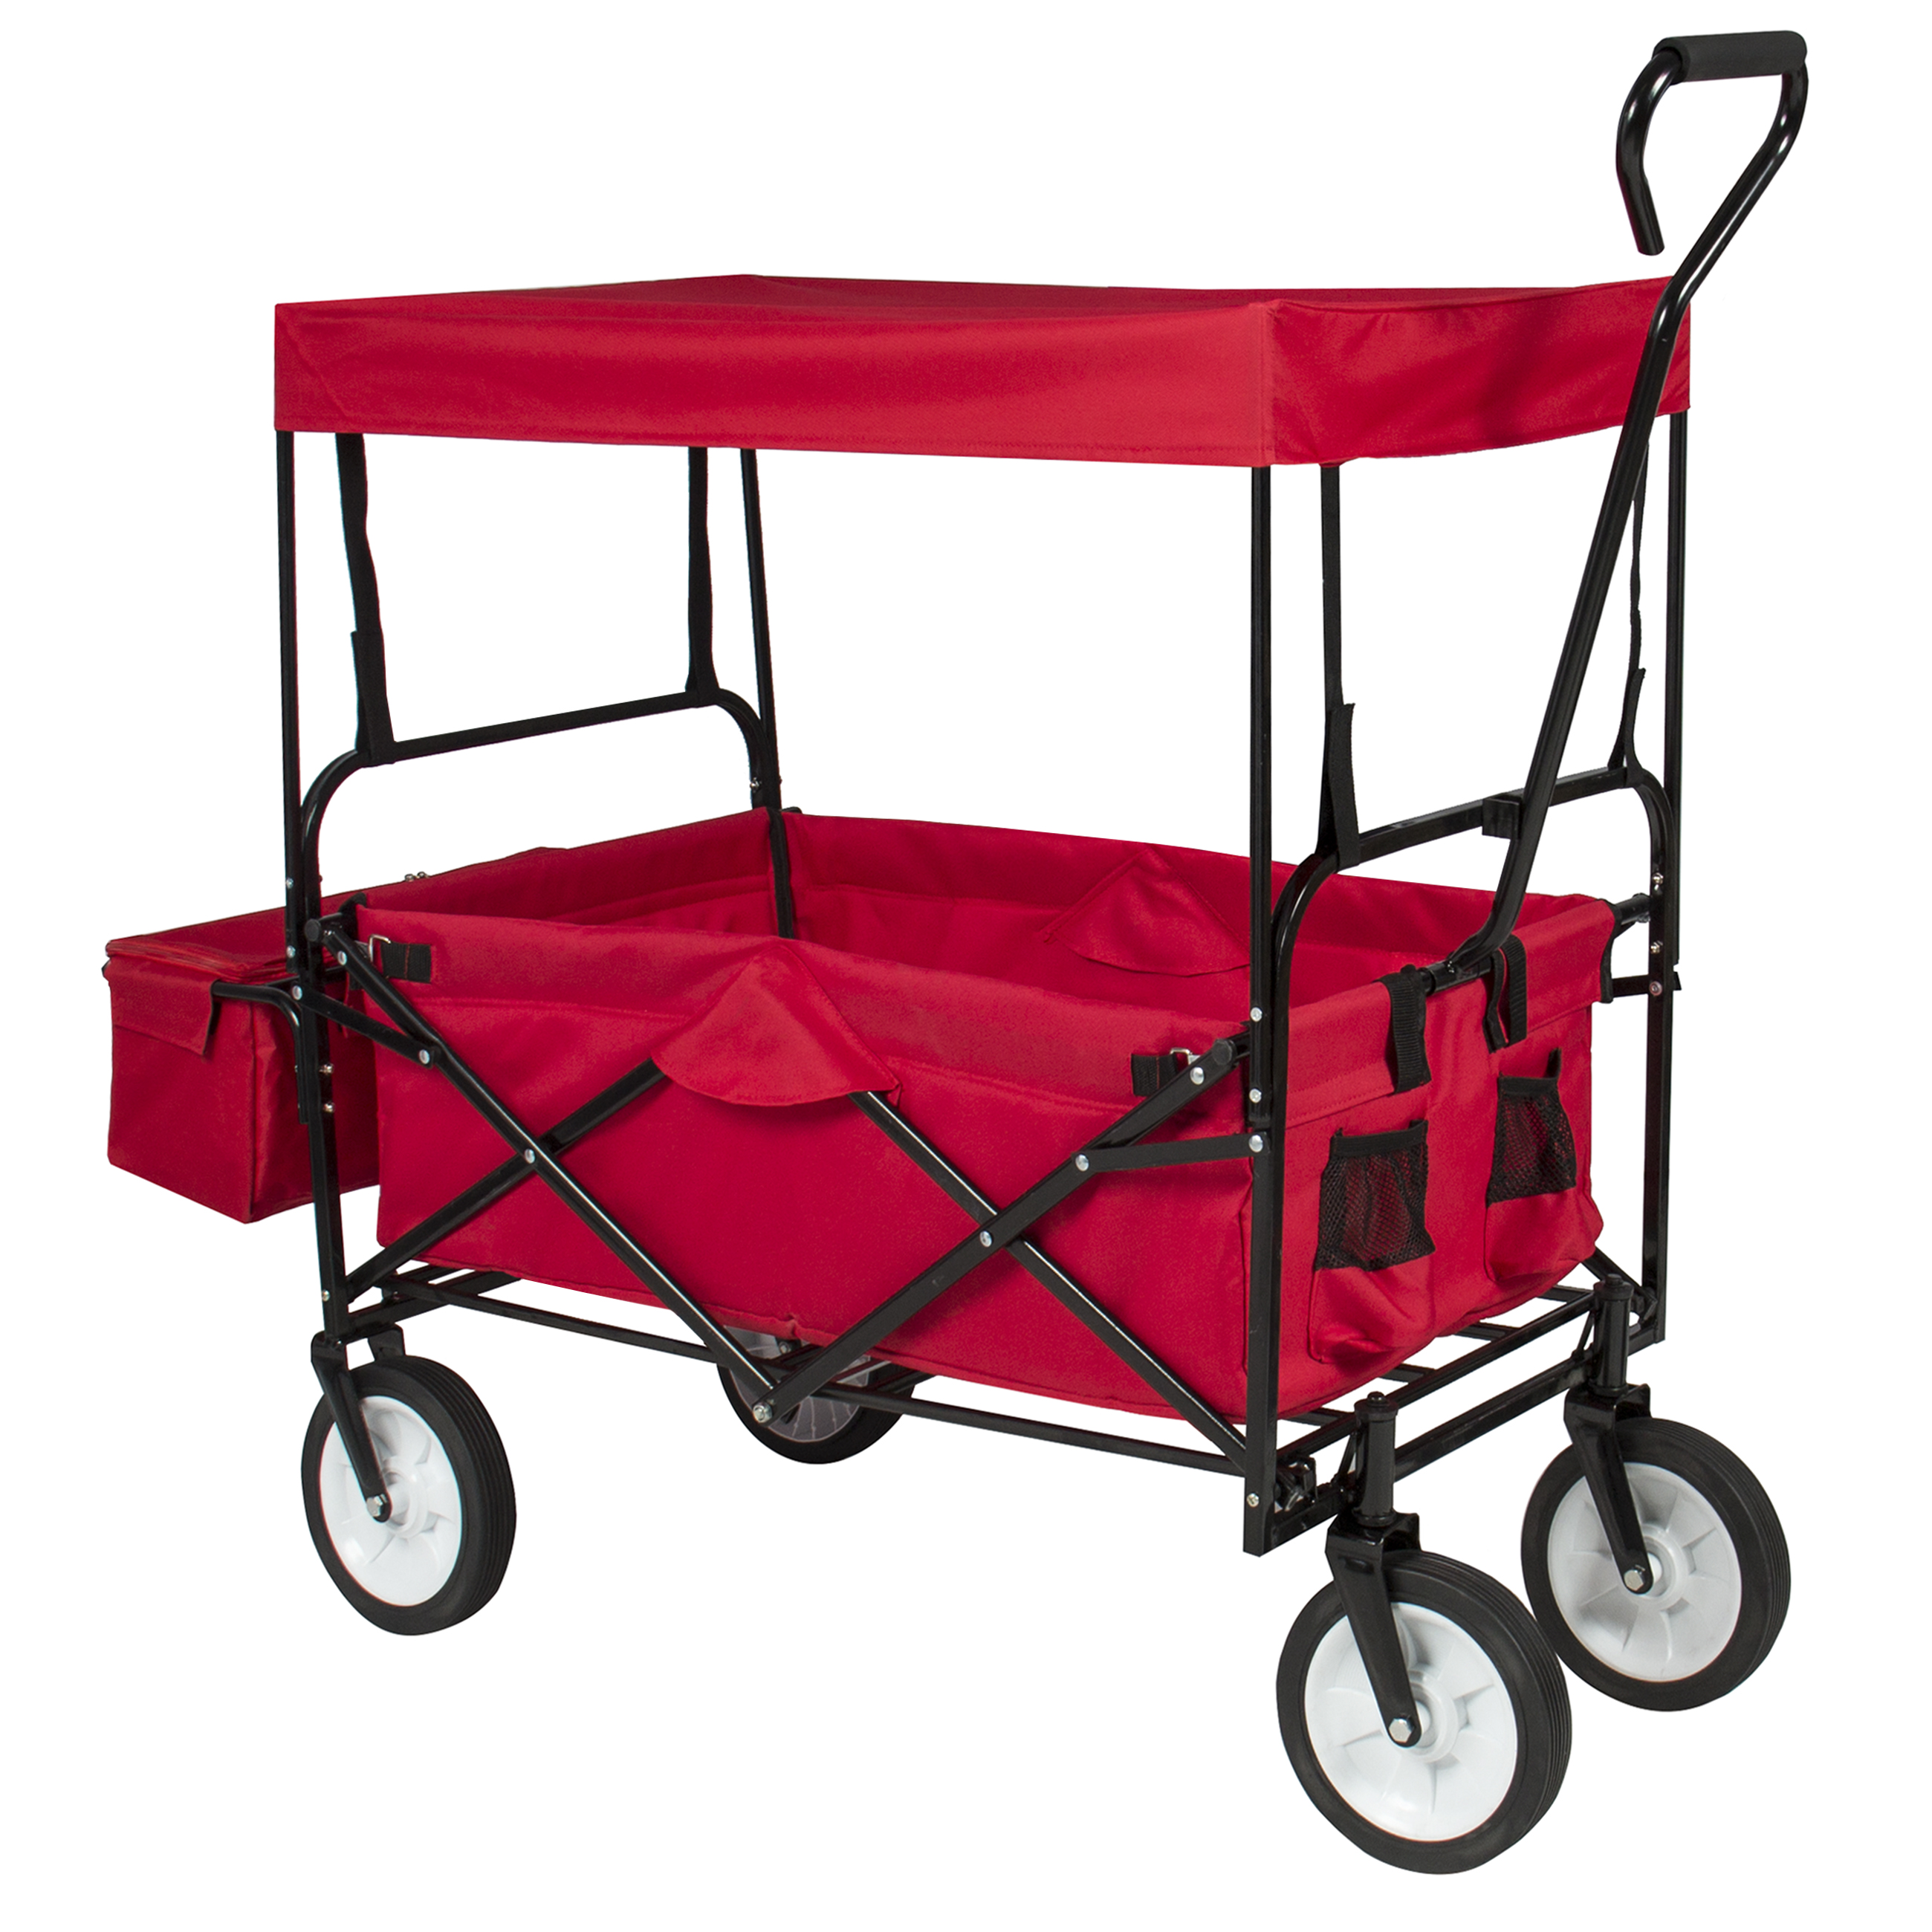 Folding Wagon W/ Canopy Garden Utility Travel Collapsible Cart Outdoor Yard Home - Walmart.com  sc 1 st  Walmart.com & Folding Wagon W/ Canopy Garden Utility Travel Collapsible Cart ...